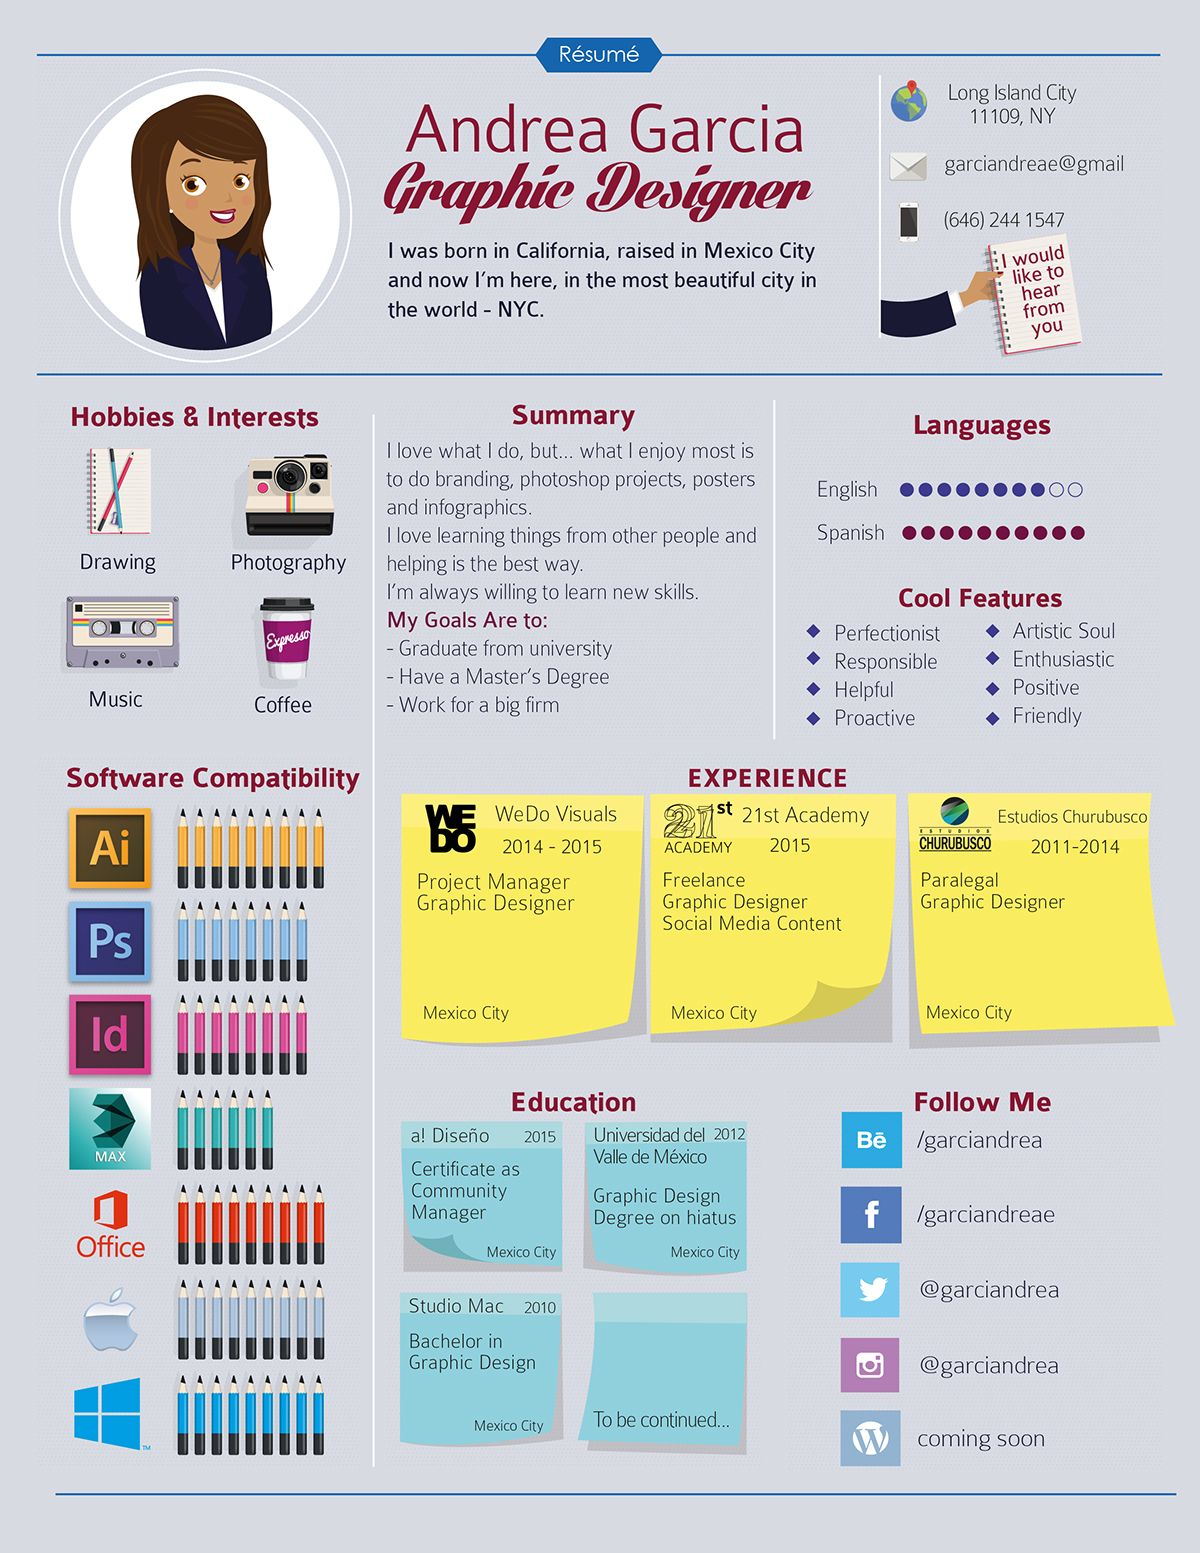 My Resume Cv On Behance Modele De Cv Creatif Design Cv Creatif Modele Cv